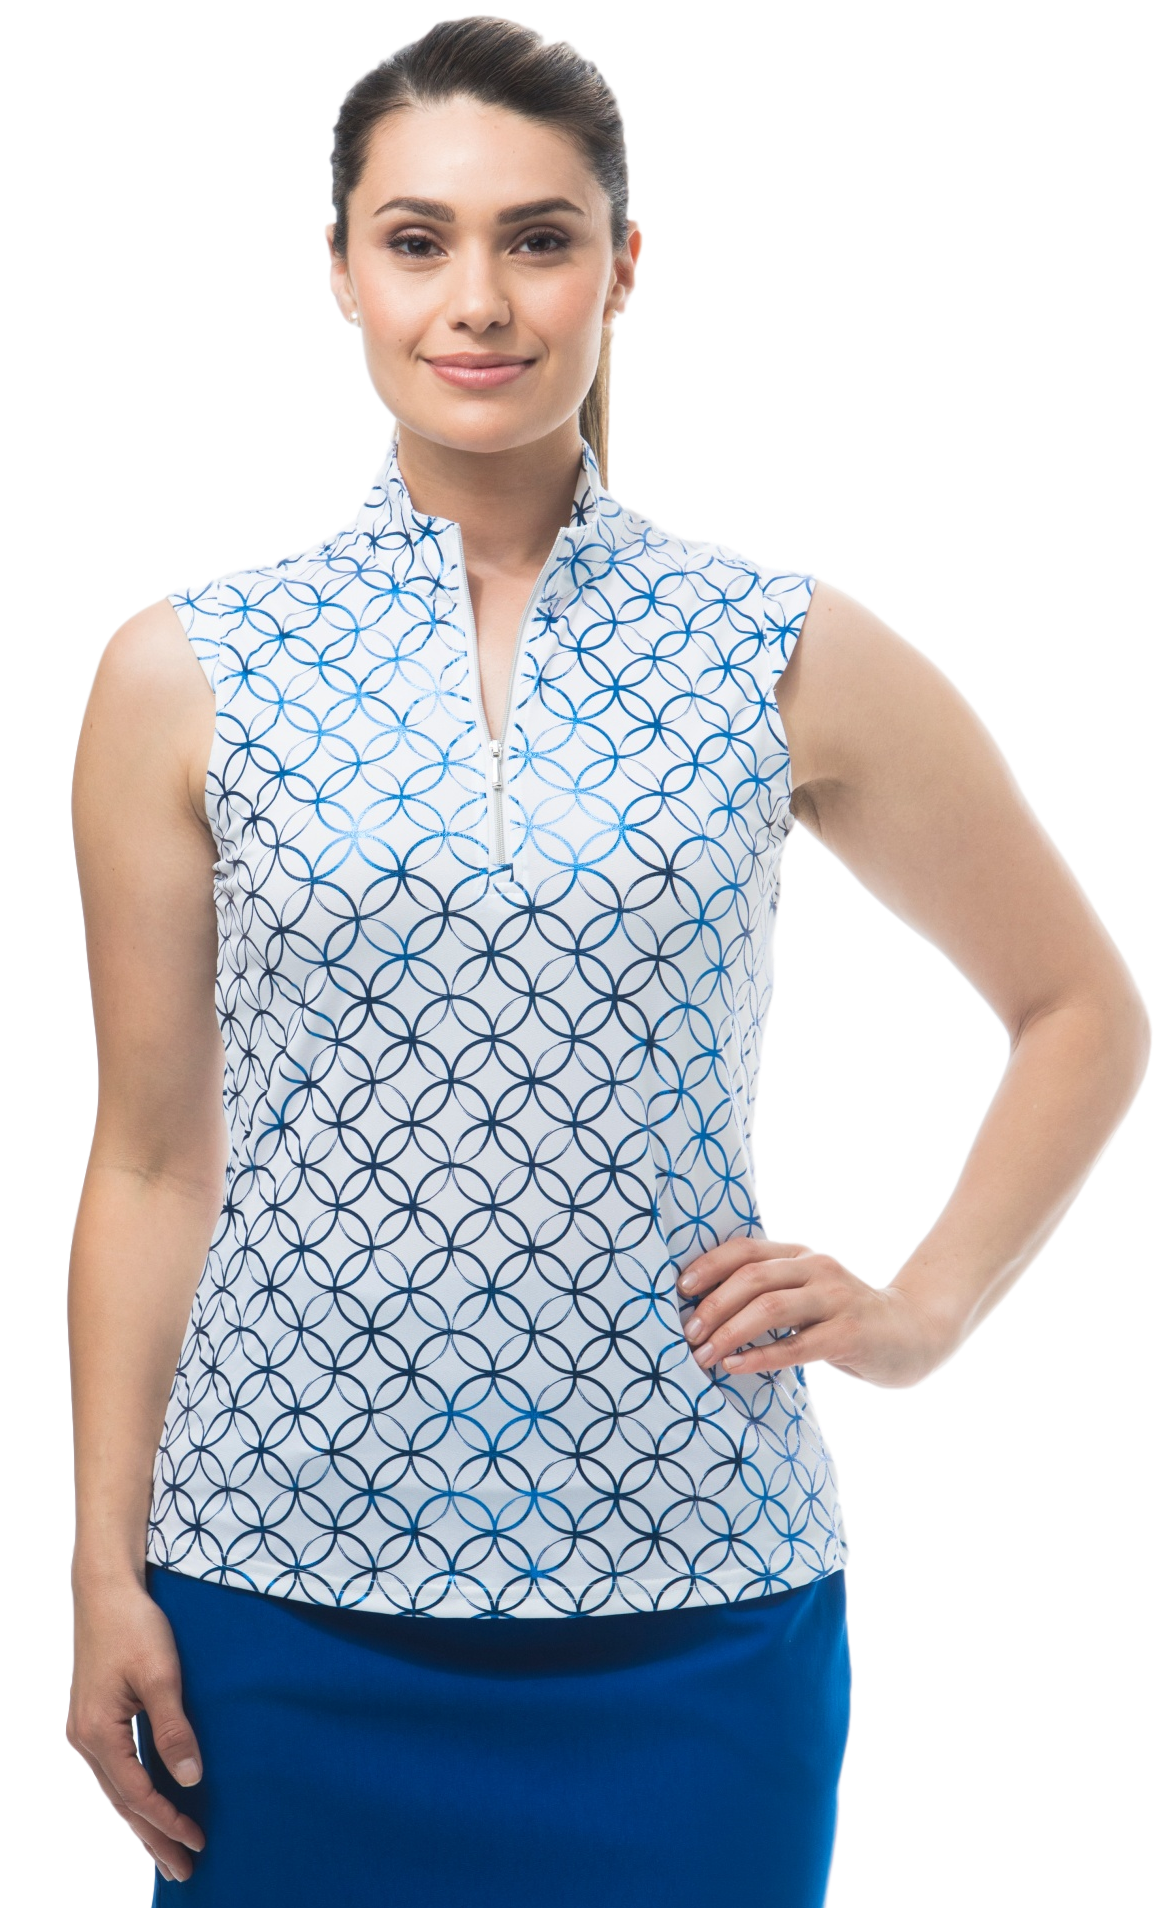 900321 - SolShine Sleeveless Zip Mock. Lattice. White Blue